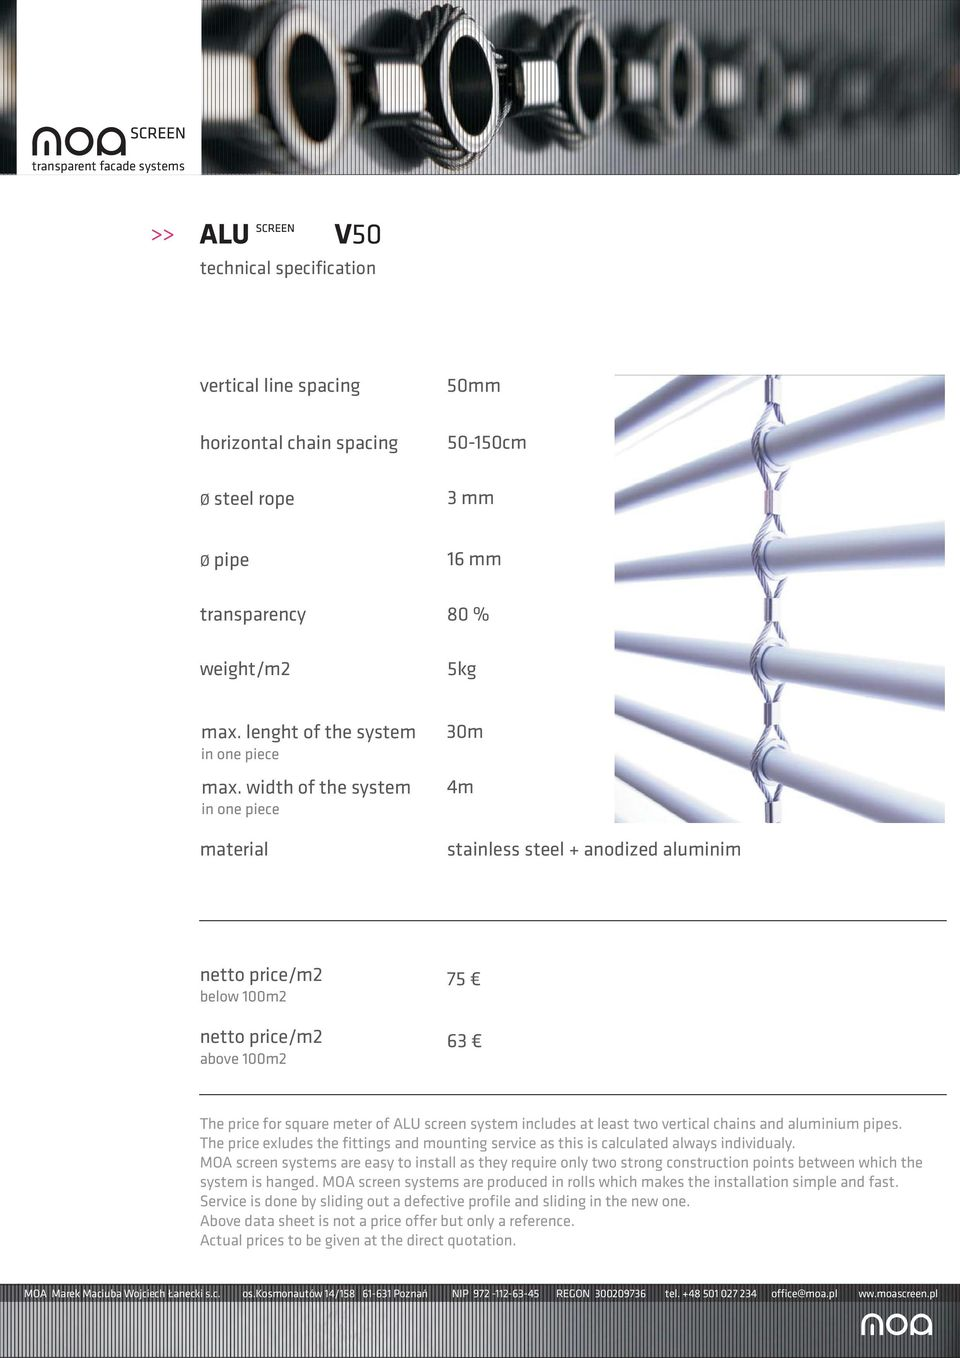 aluminium pipes. The price exludes the fittings and mounting service as this is calculated always individualy.